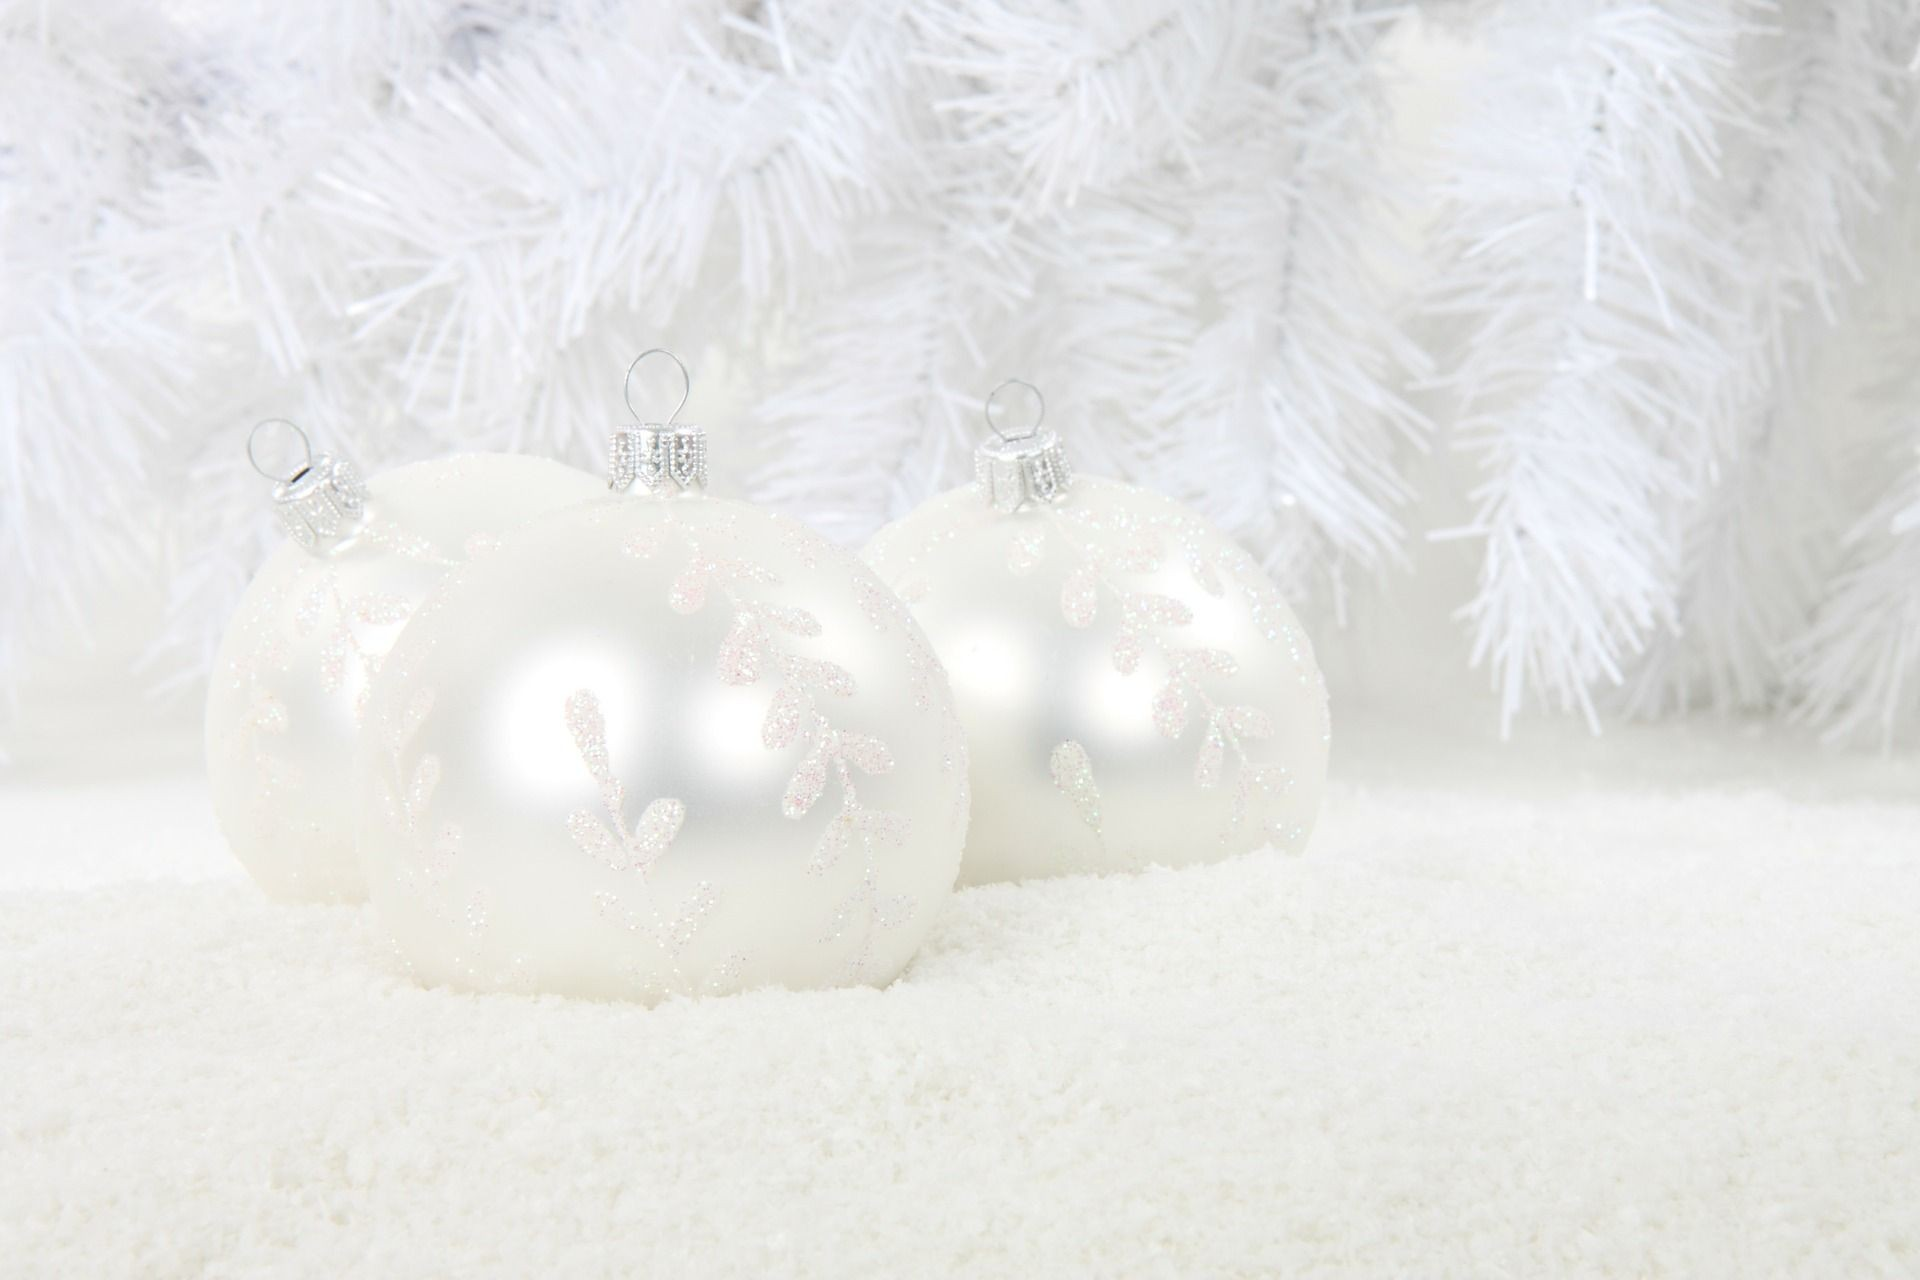 White Christmas Snow Background.White Christmas Background Download Free Hd Wallpapers